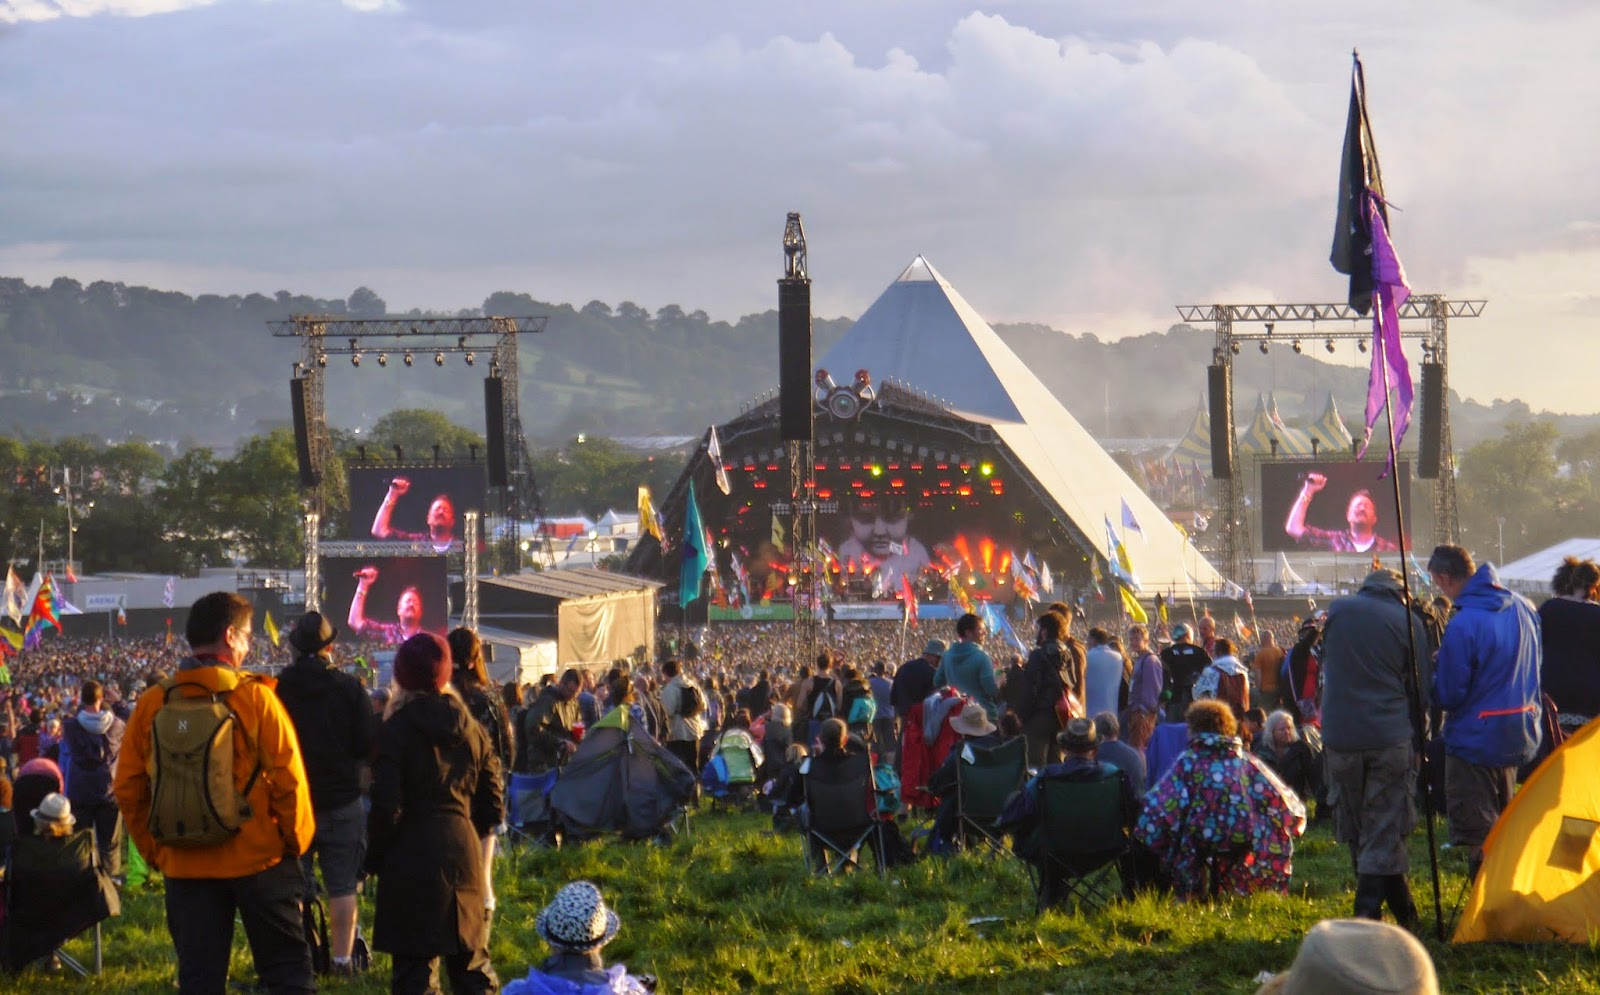 Elbow at Glastonbury Festival